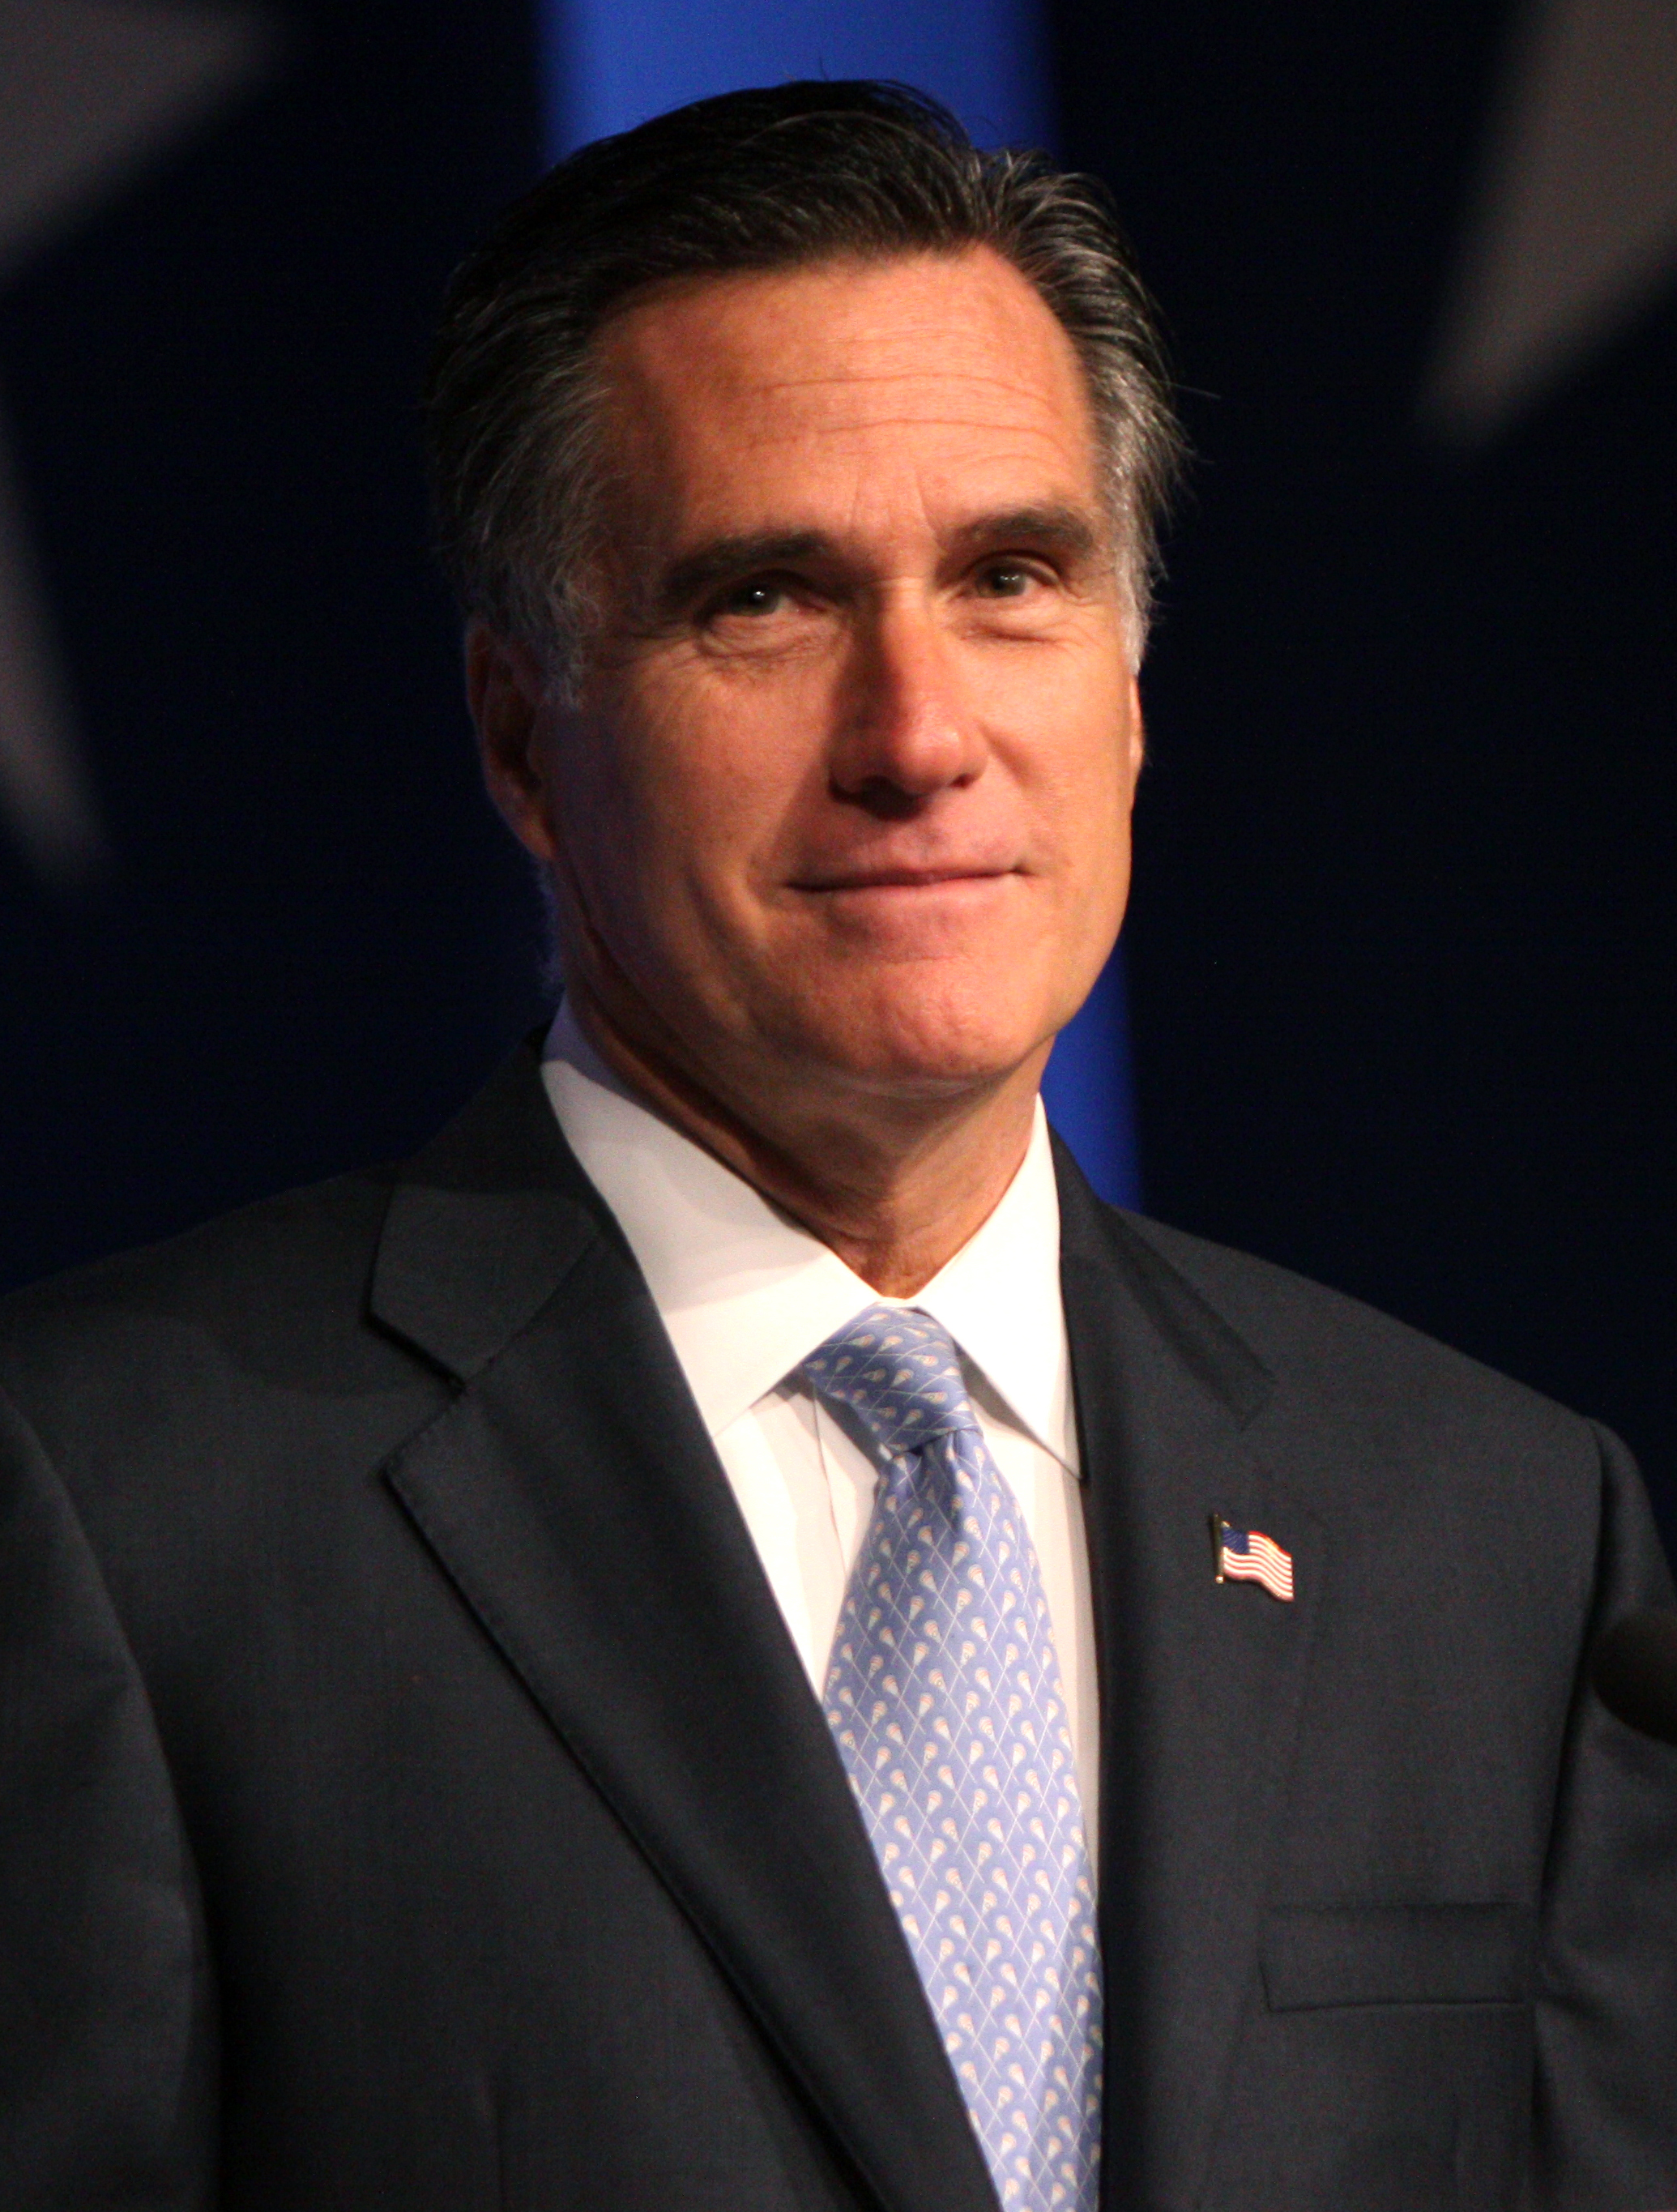 Mitt Romney earned a  million dollar salary, leaving the net worth at 250 million in 2017